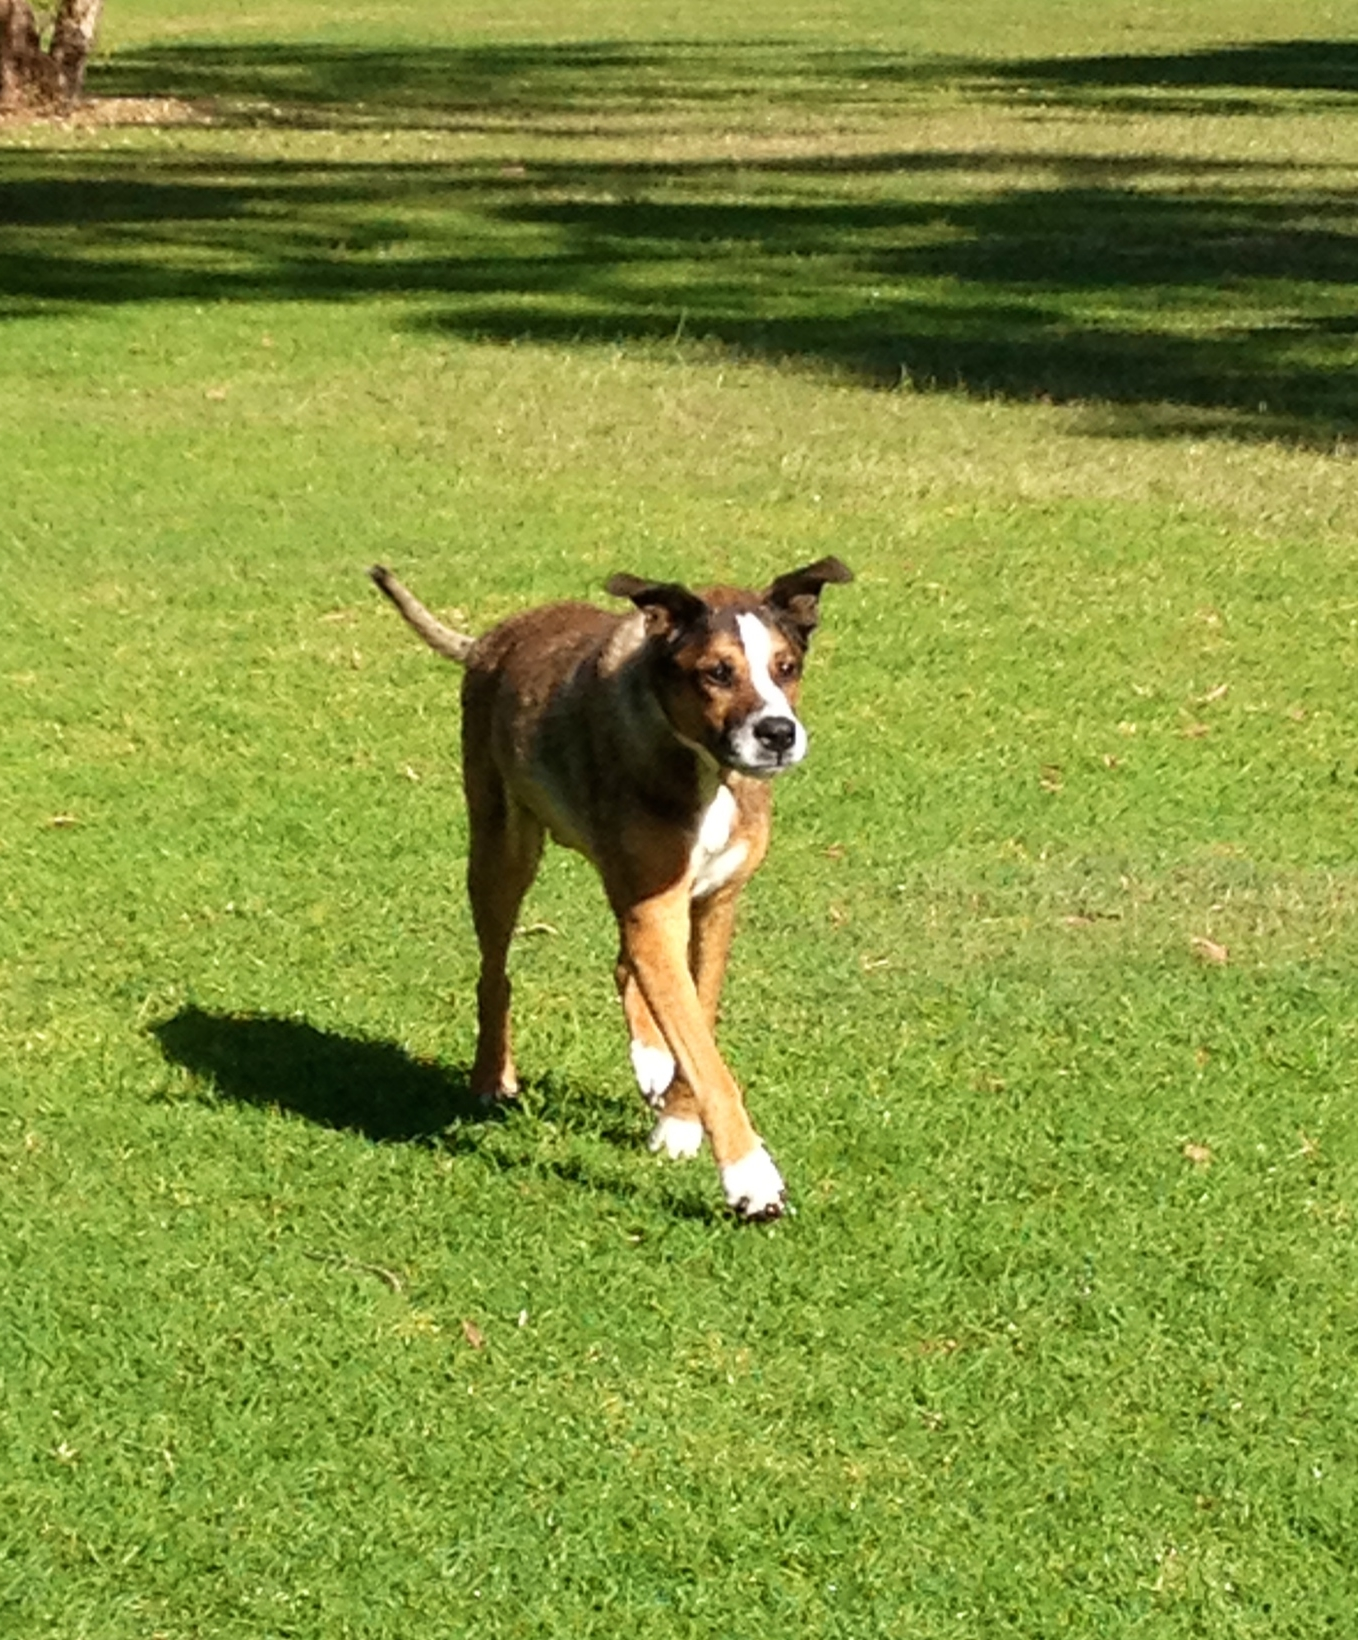 Chico trots through a dog park in Sydney after acupuncture therapy using moxibustion.